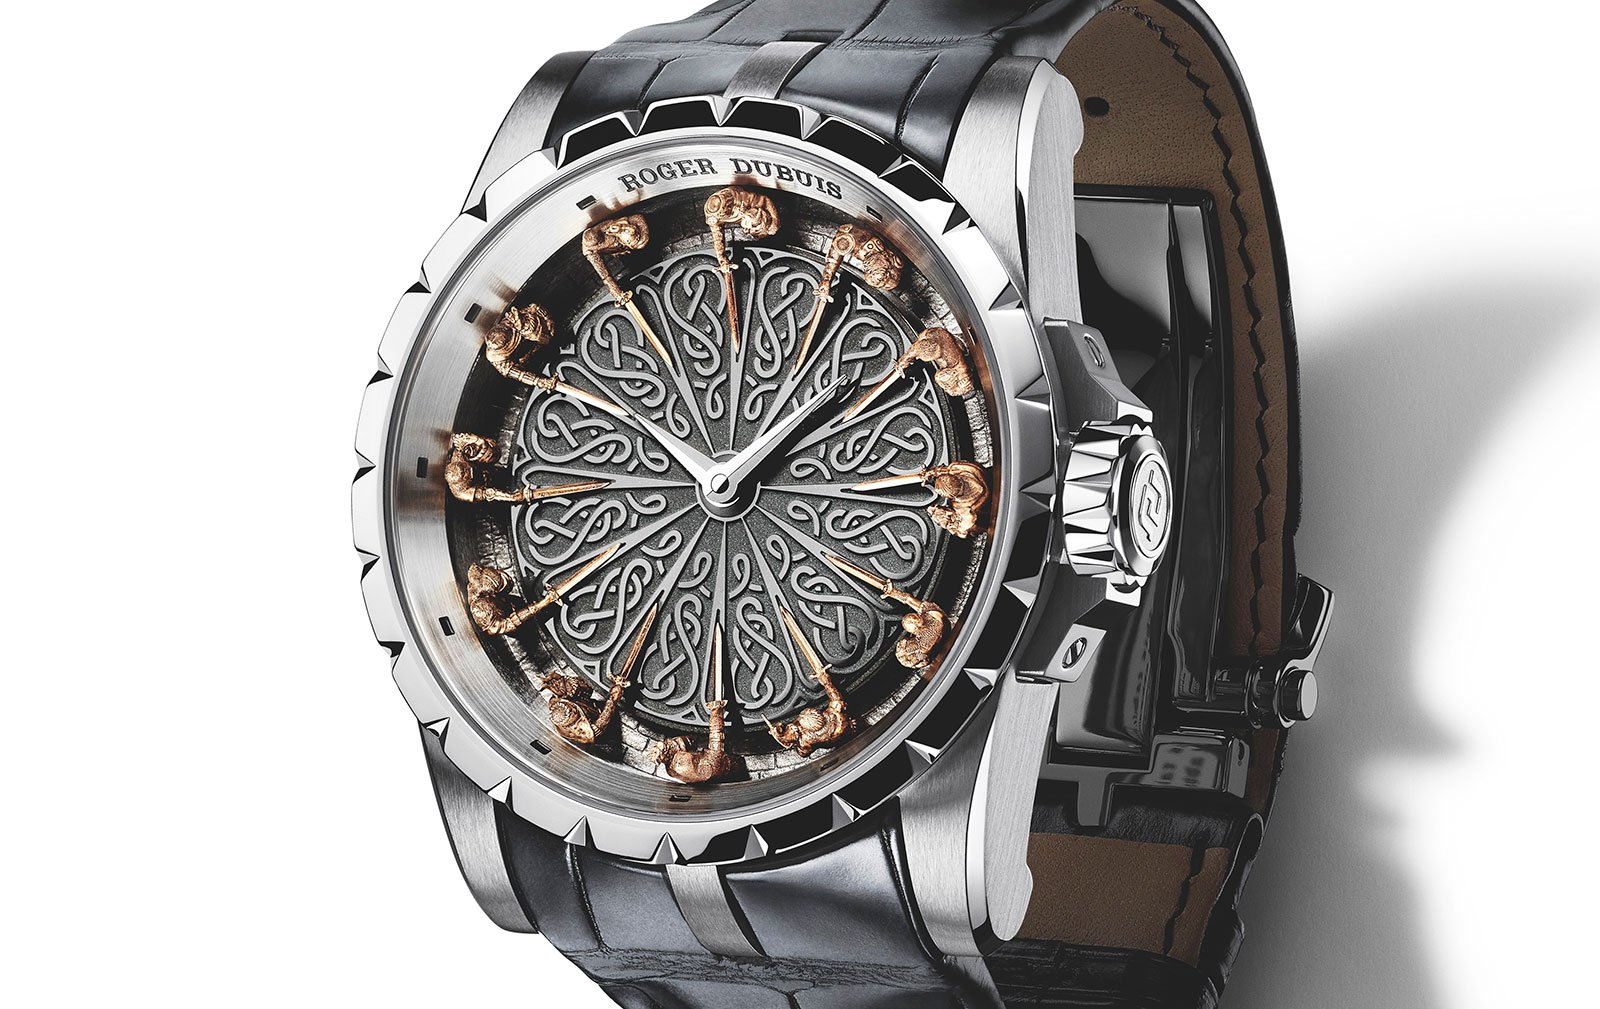 Roger dubuis watch time clock jewelry detail luxury - Roger dubuis knights of the round table watch ...